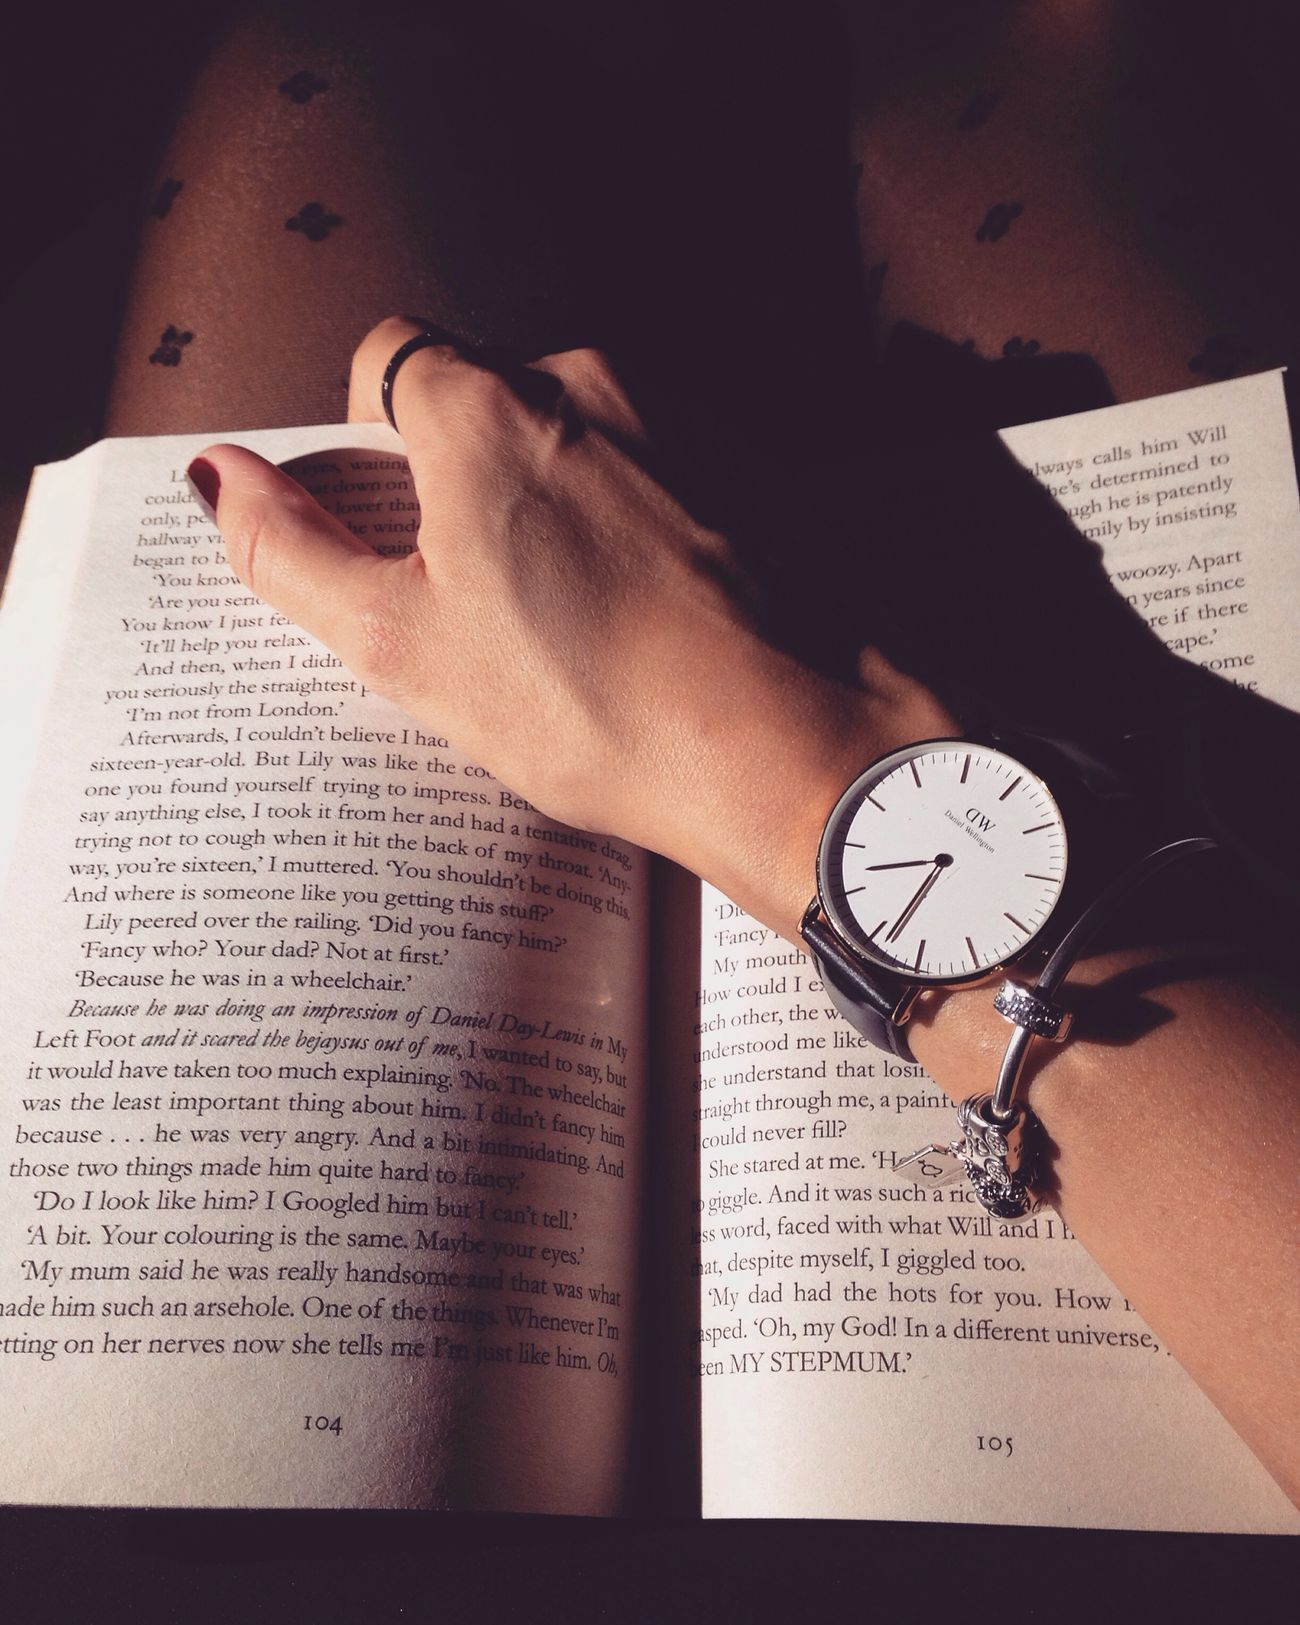 Danielwellington Watch Blackwatch Afteryou Jojomoyes Book Legs Tights Blacktights Winter First Eyeem Photo Pandora Pandorabracelet Monochrome Blackandwhite